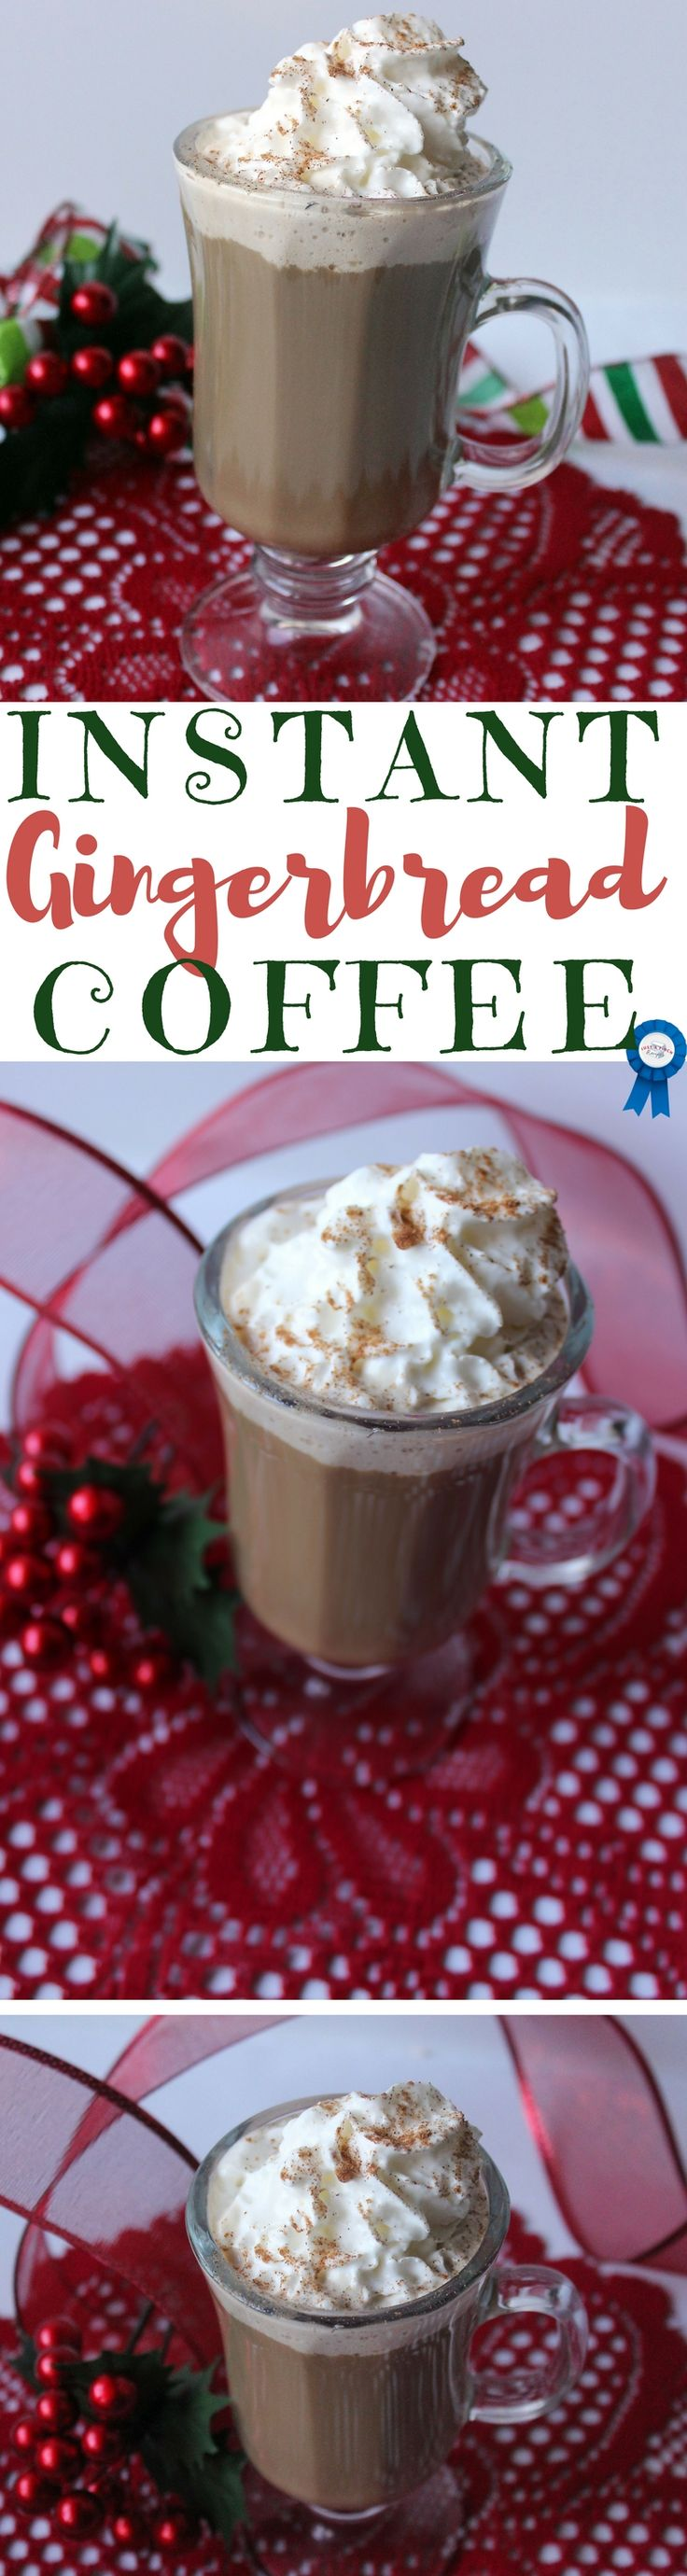 ... on Pinterest   Hot chocolate mix, Skinny margarita recipes and Punch